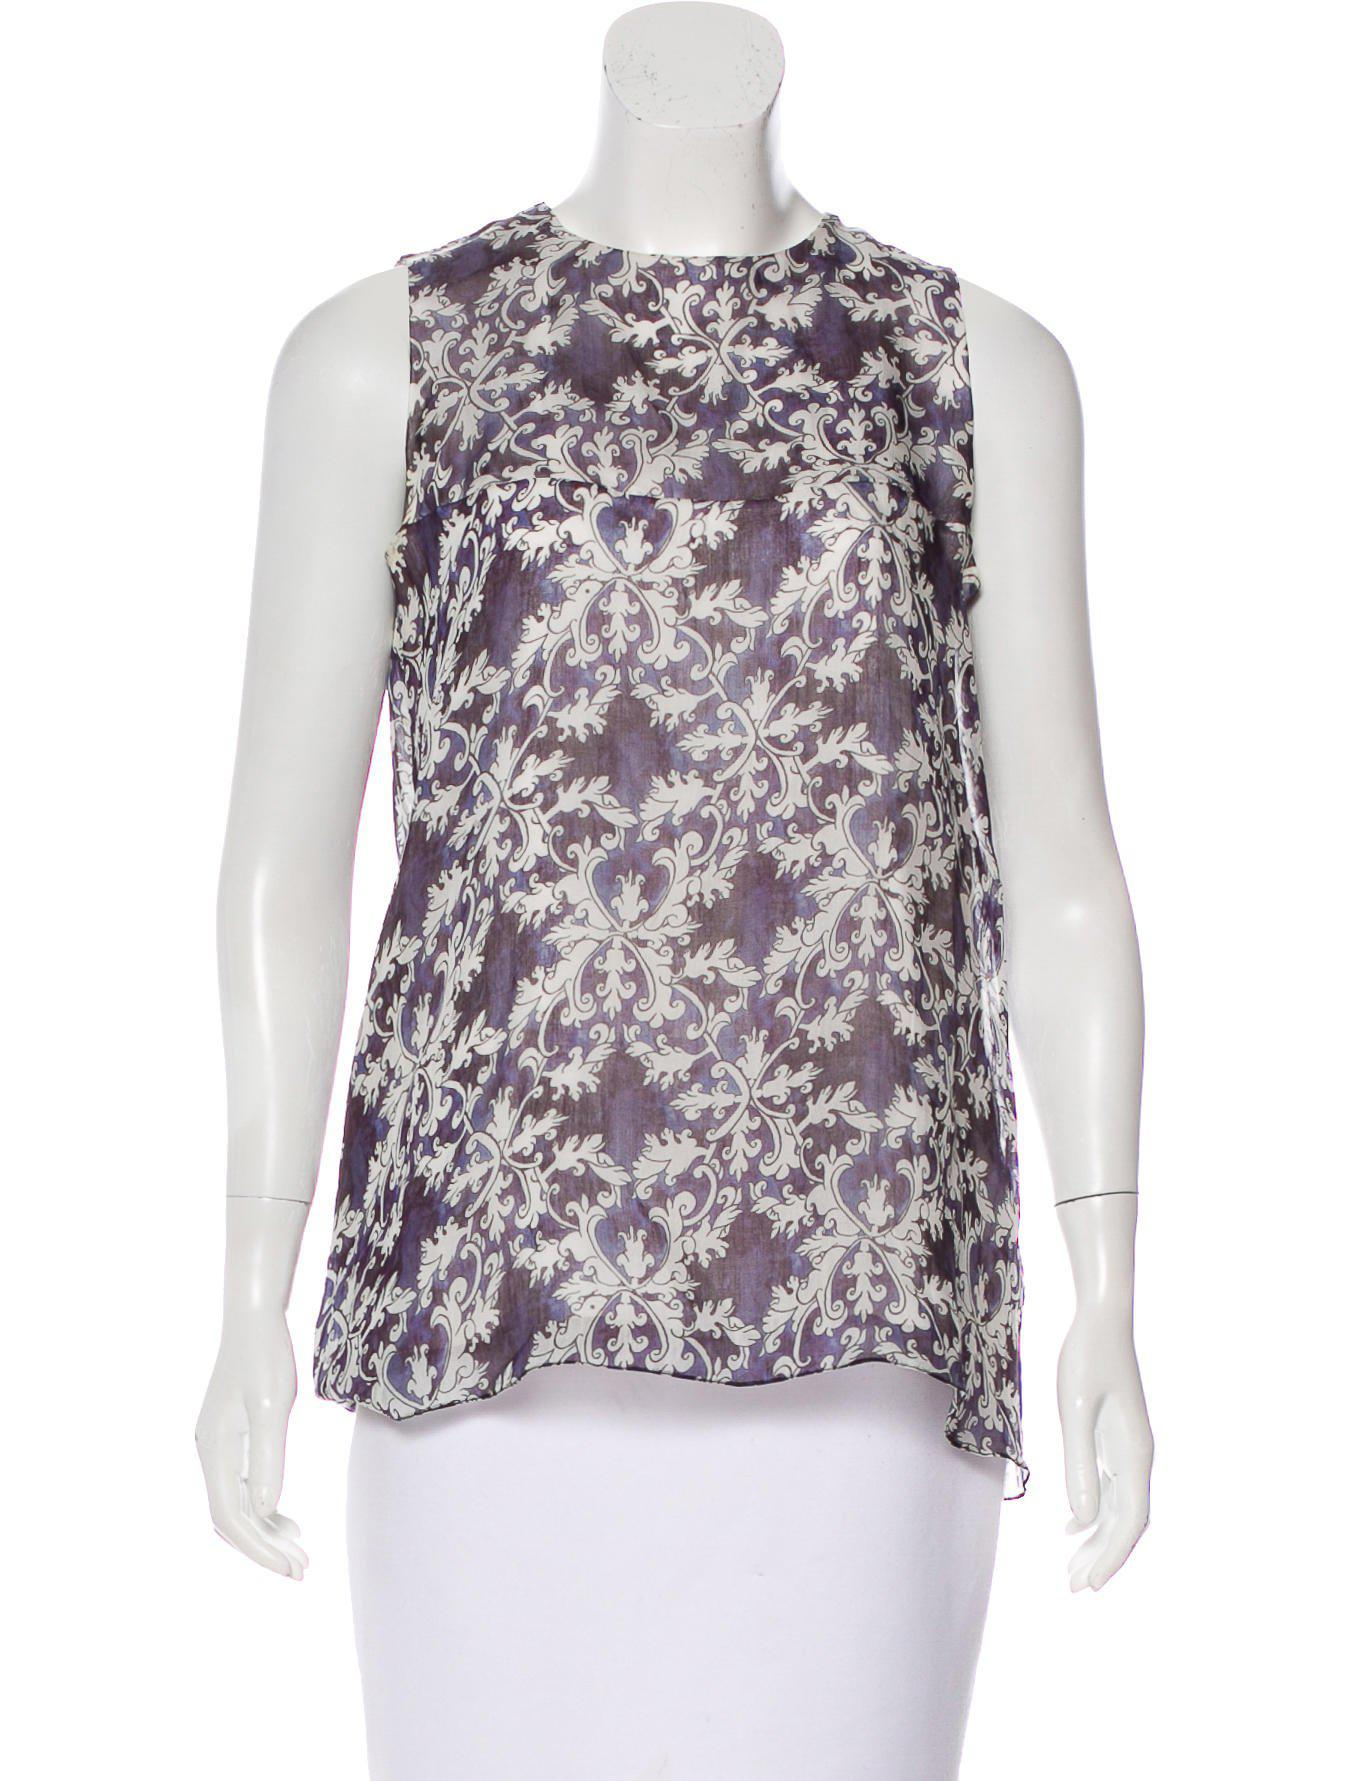 Isolda Printed Sleeveless Top Wear Resistance Outlet Latest Collections UifA28cq